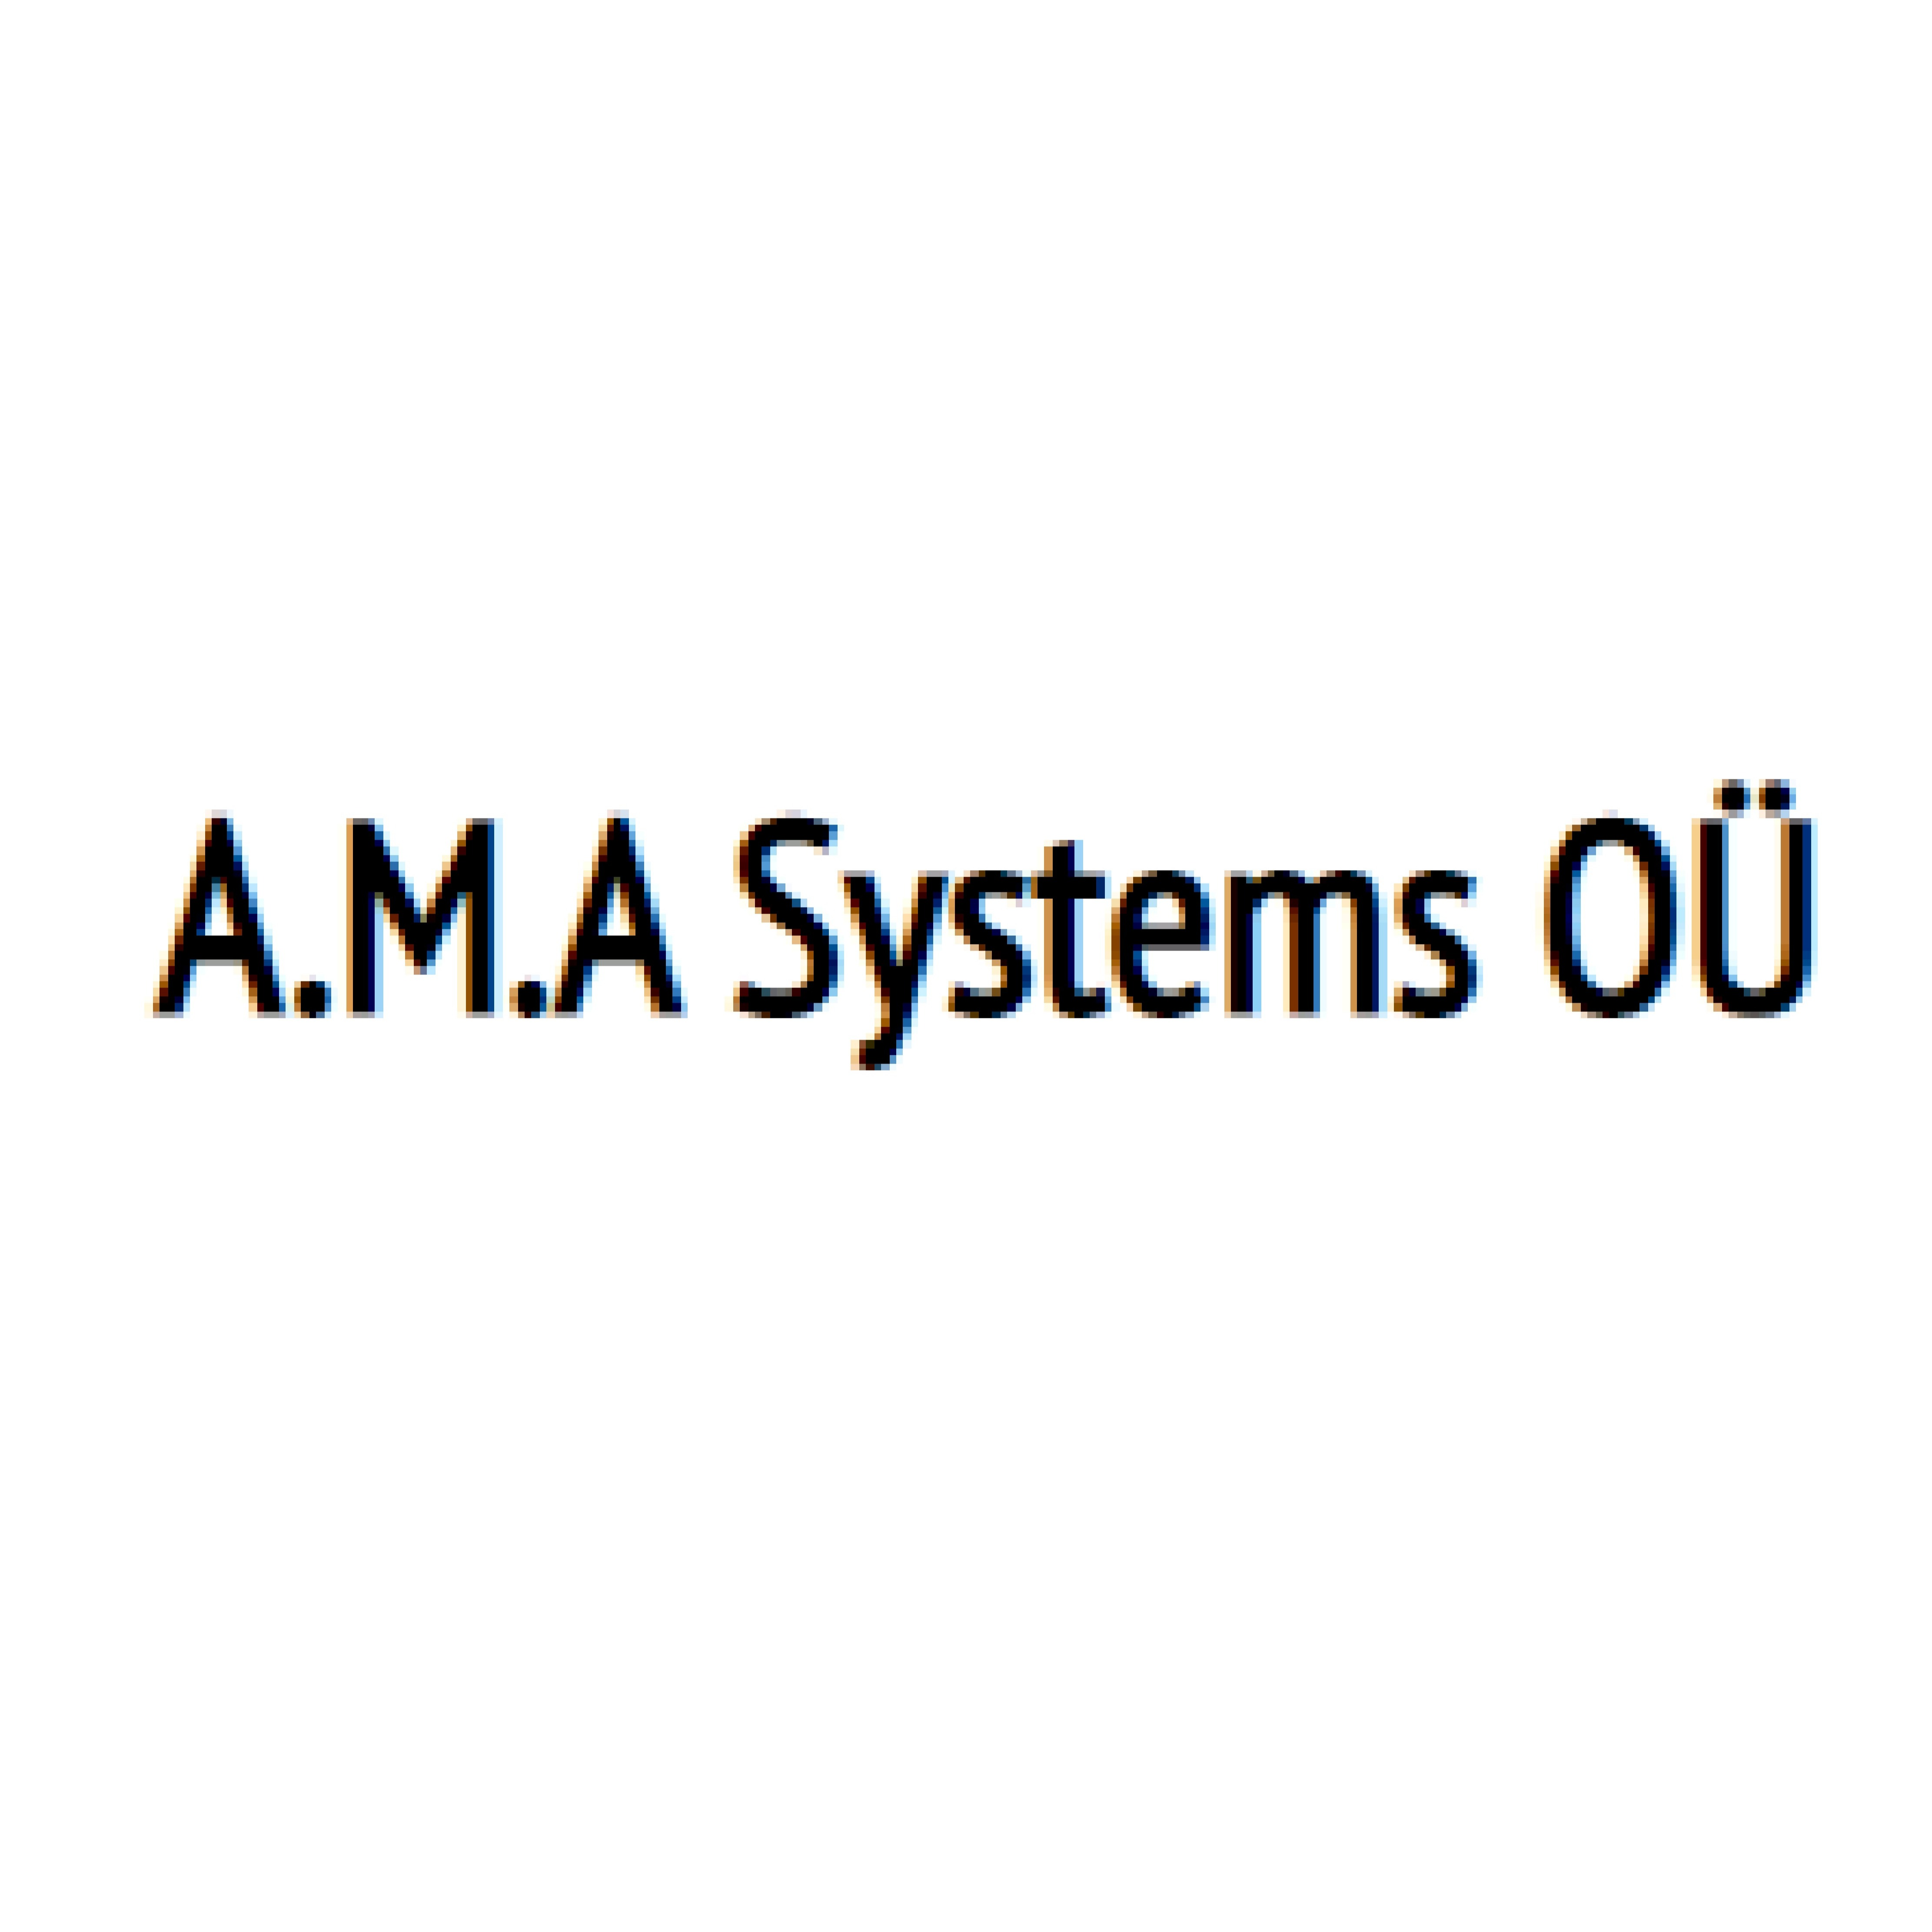 A.M.A Systems OÜ